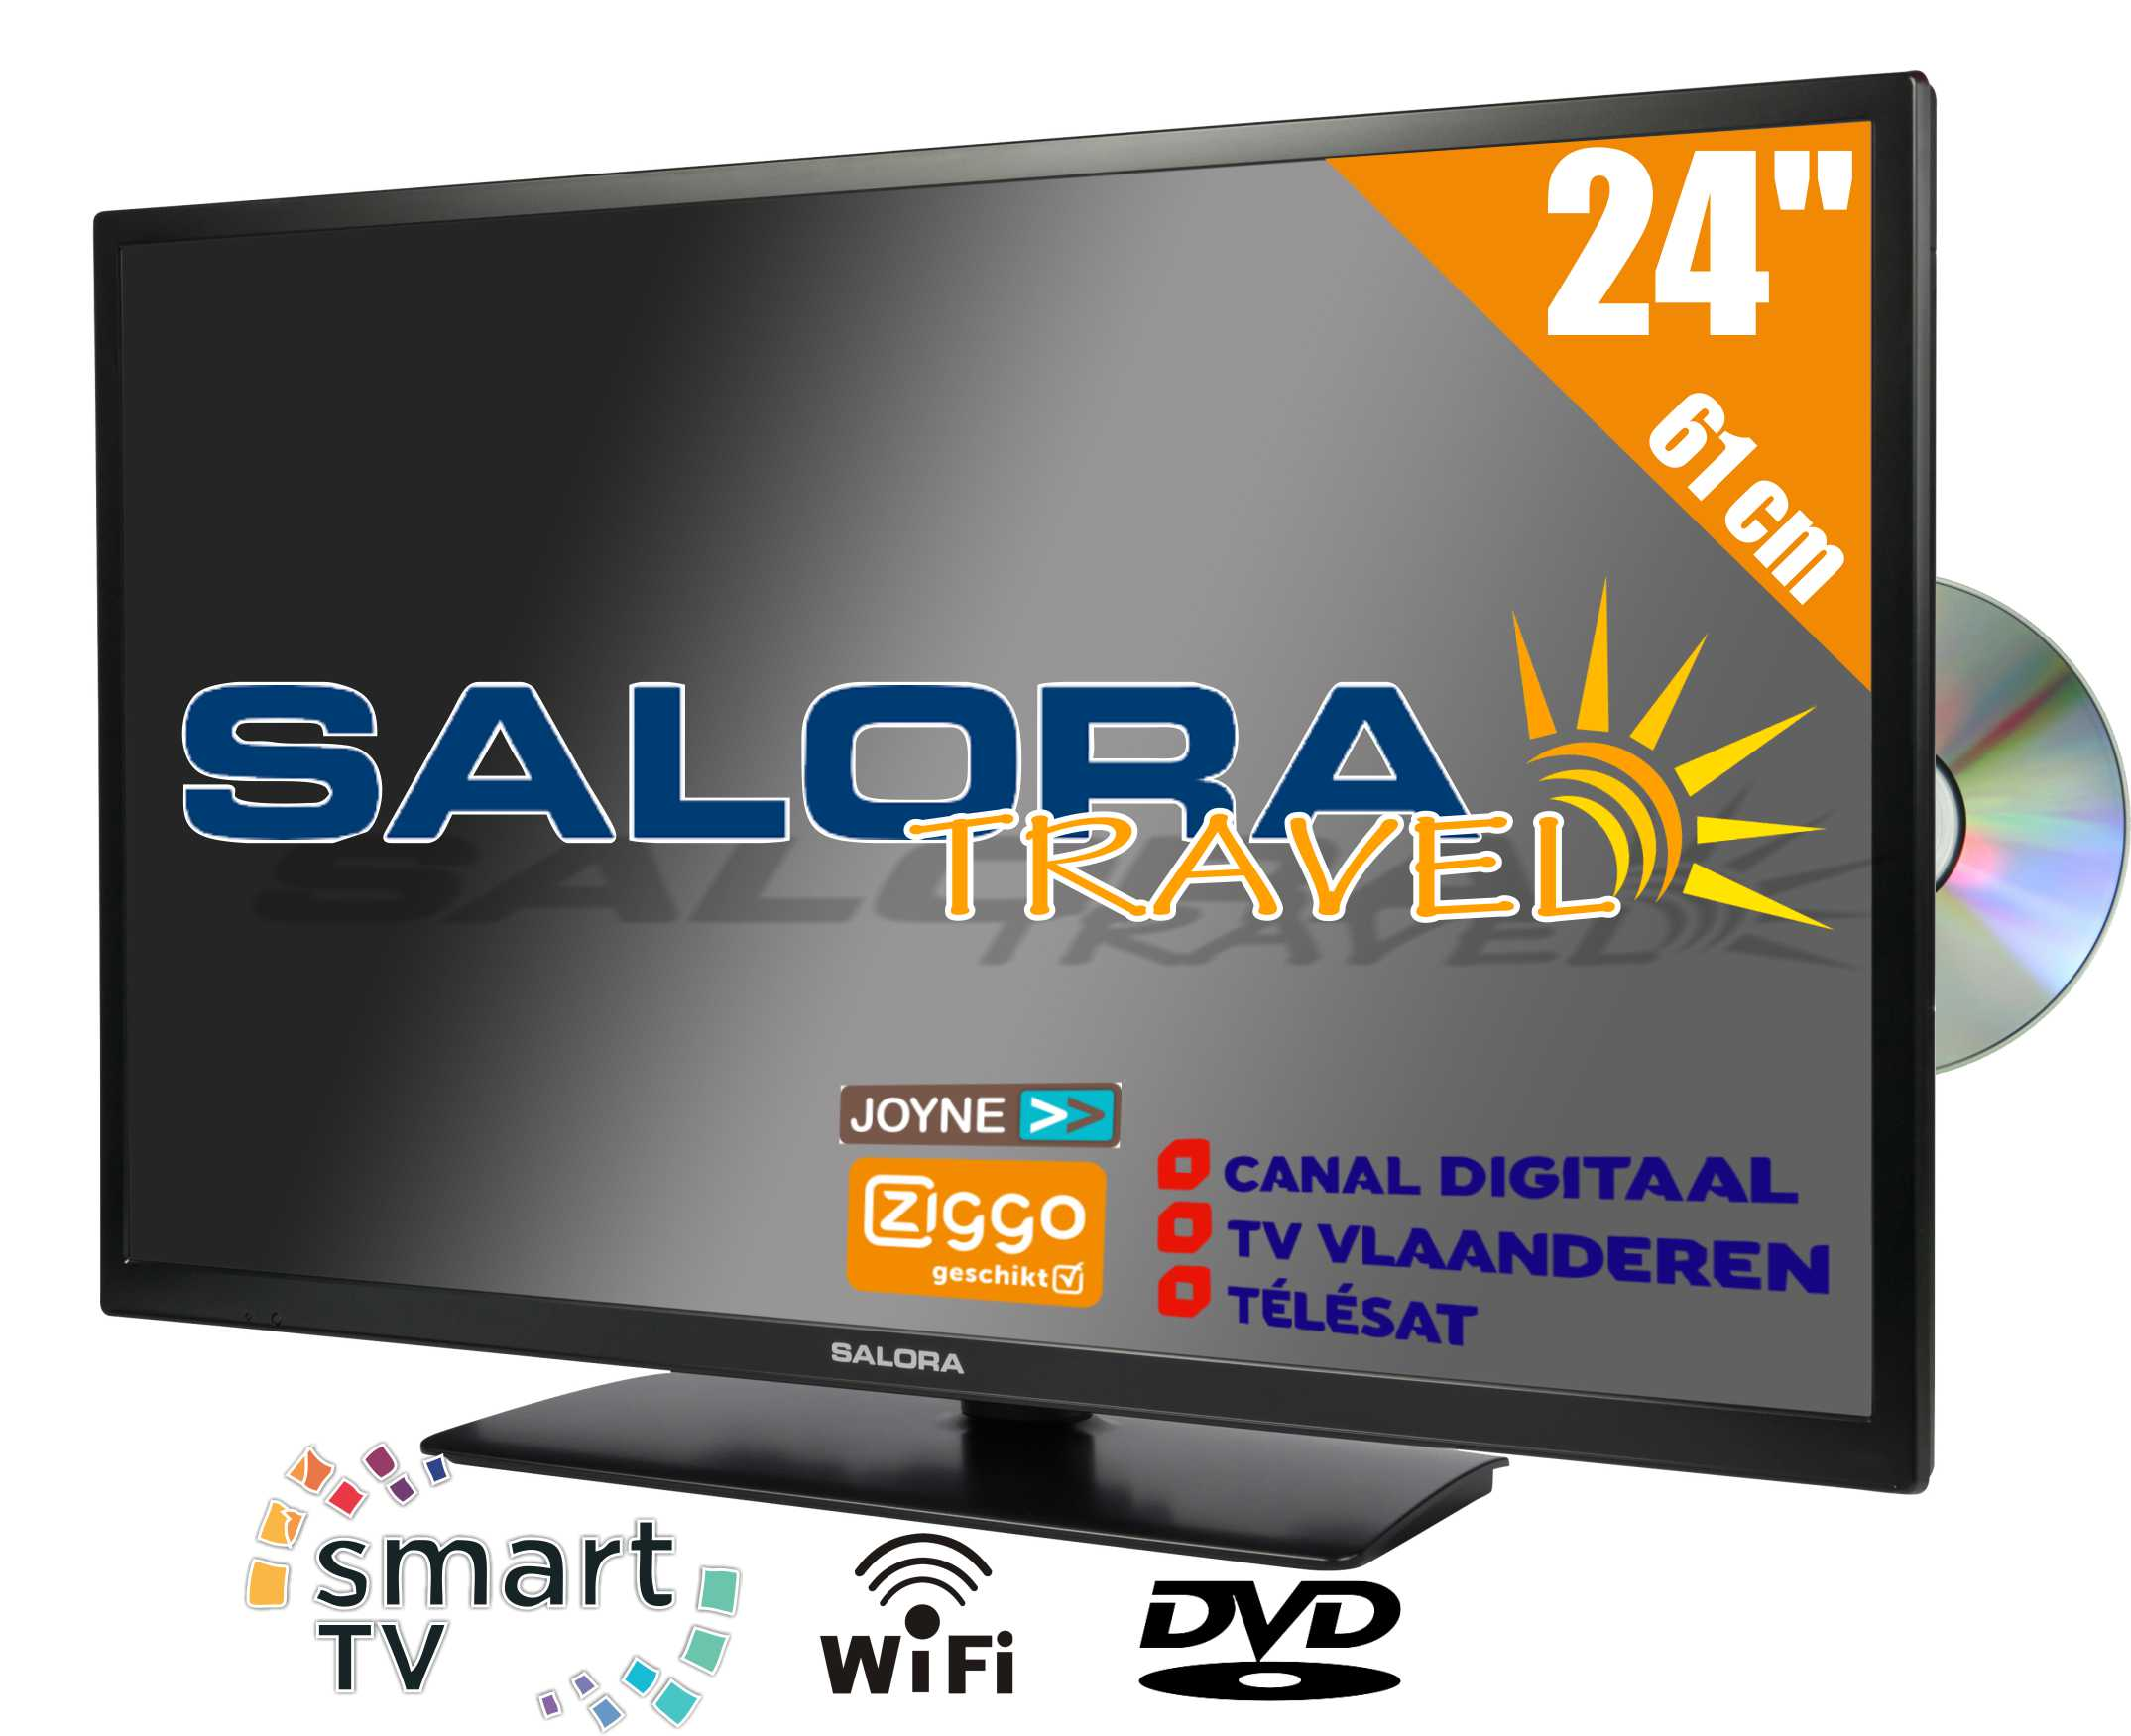 "24LED9109CTS2DVDWIFI, 24""/60 cm travel TV 12/230 Volt Smart Wifi DVD, black"